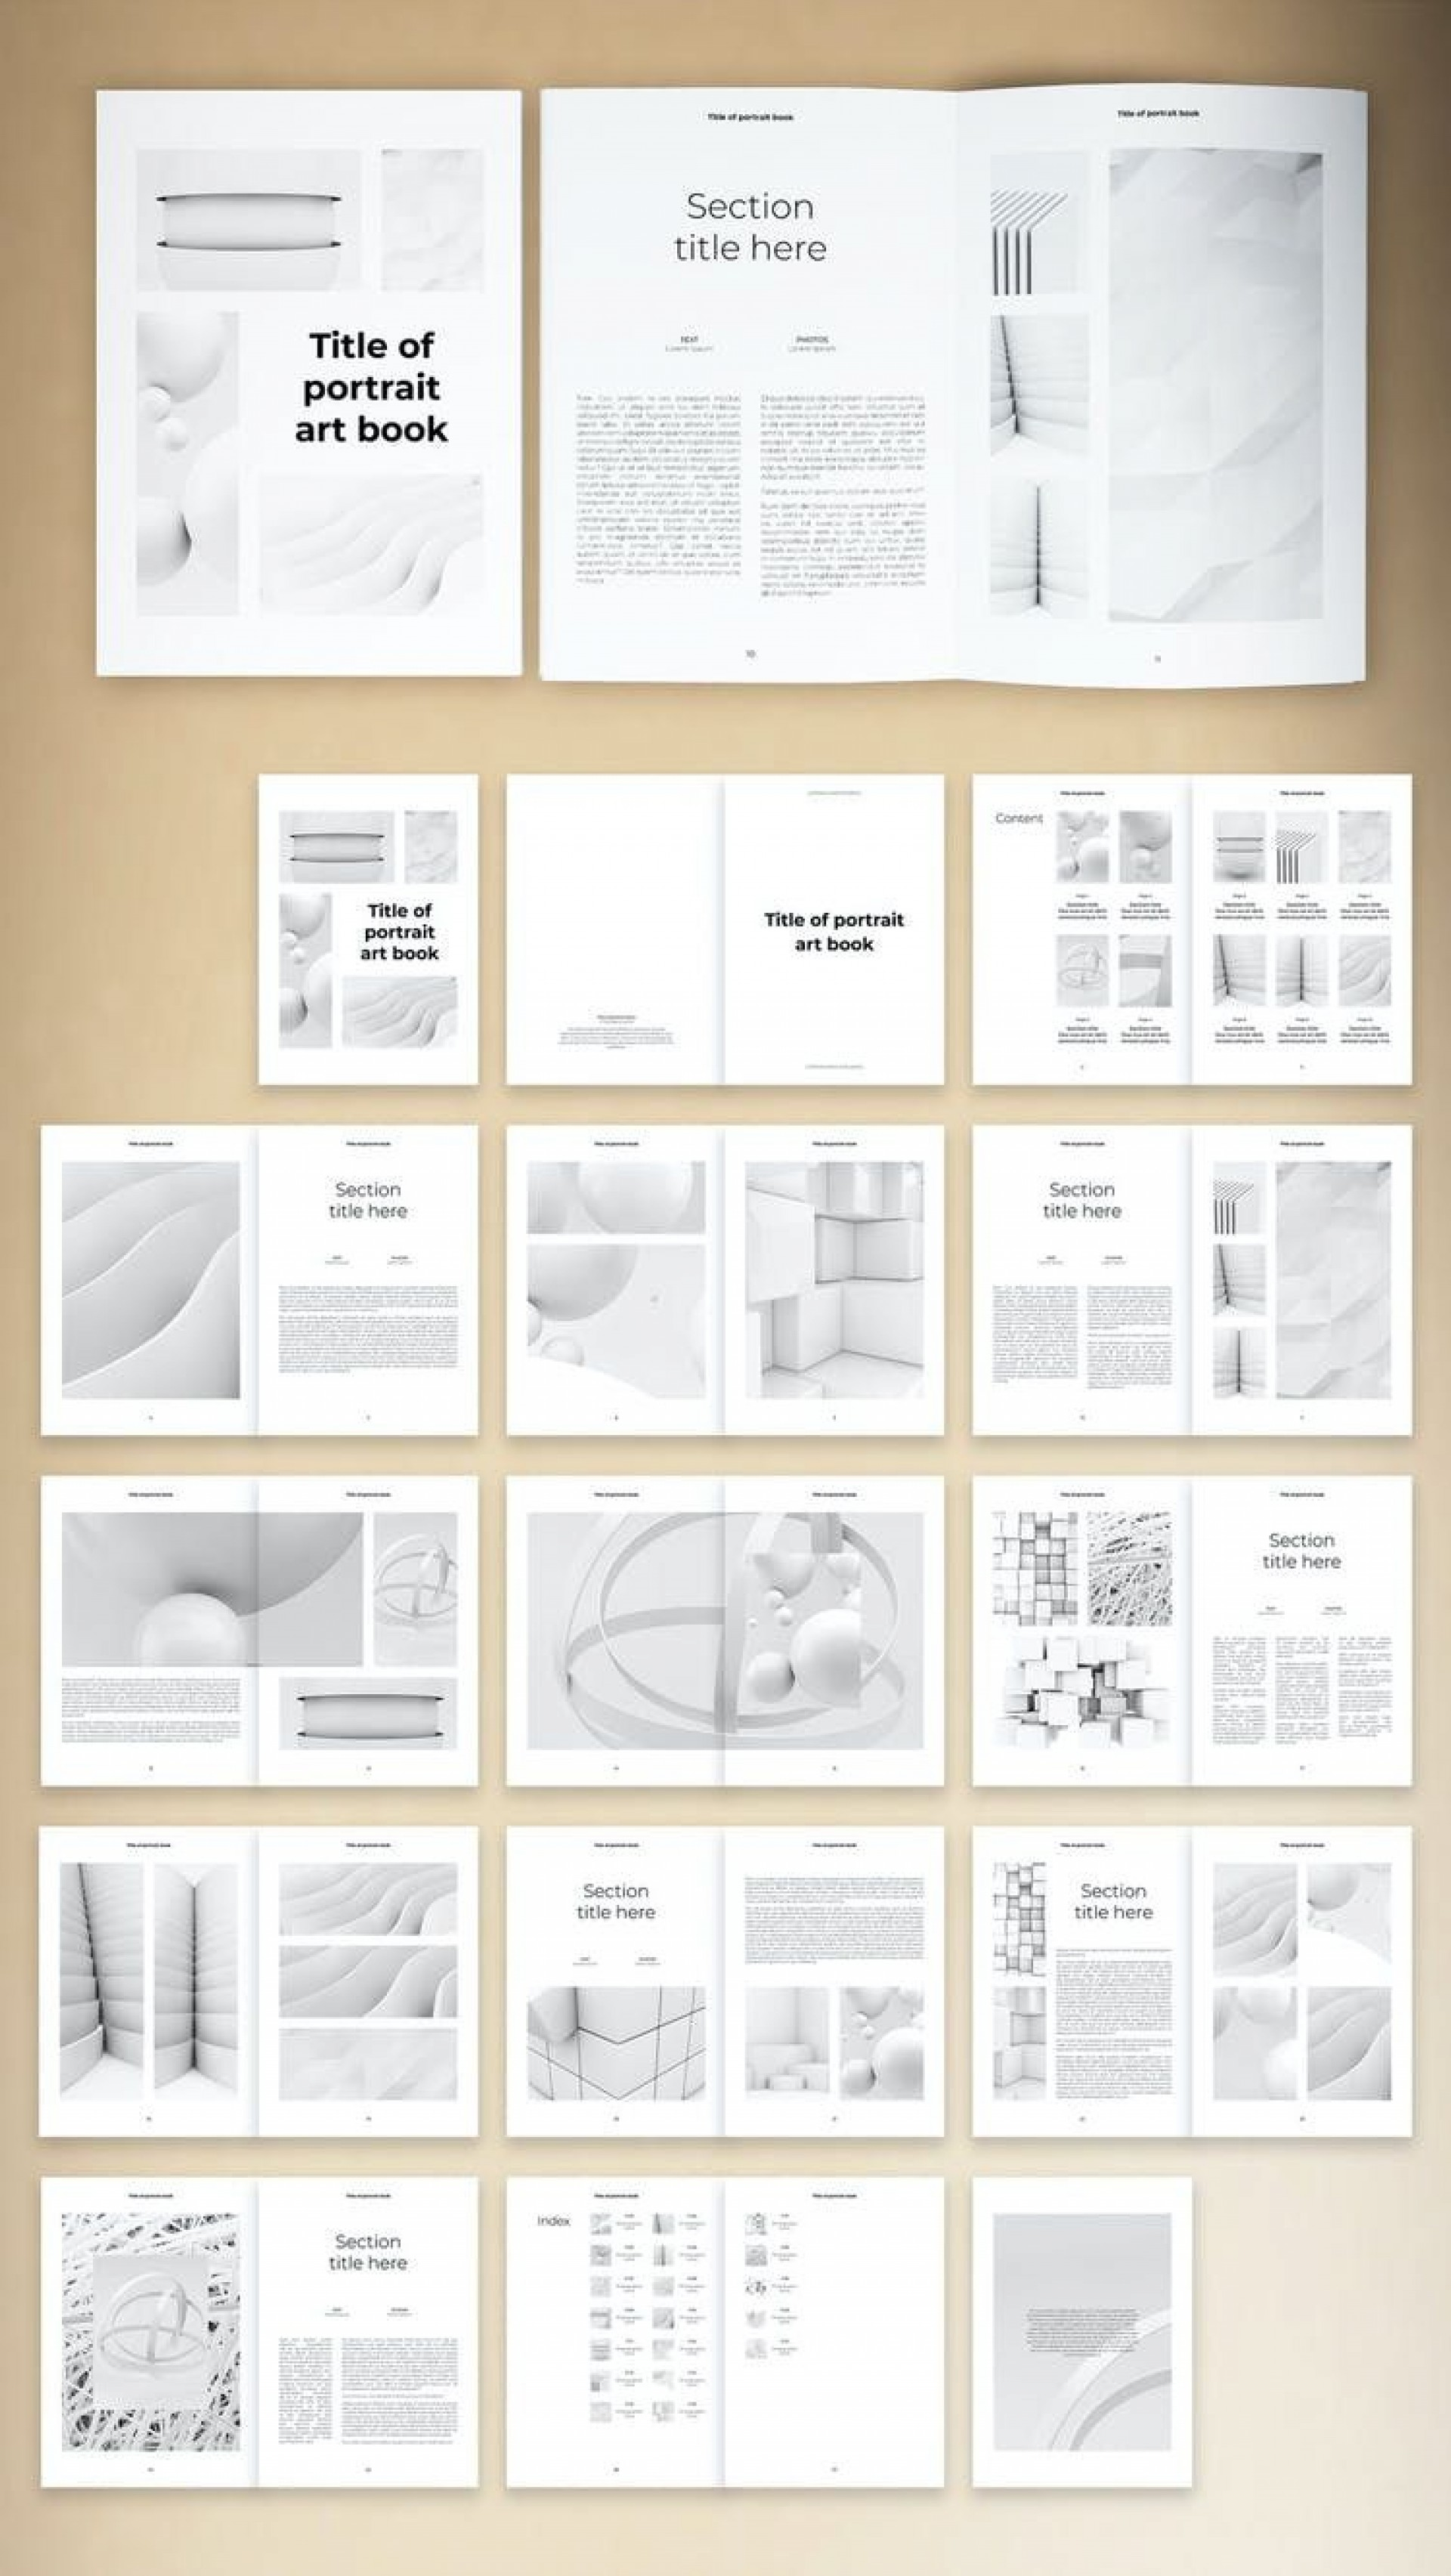 002 Wondrou Indesign Book Layout Template Example  Free Download1920